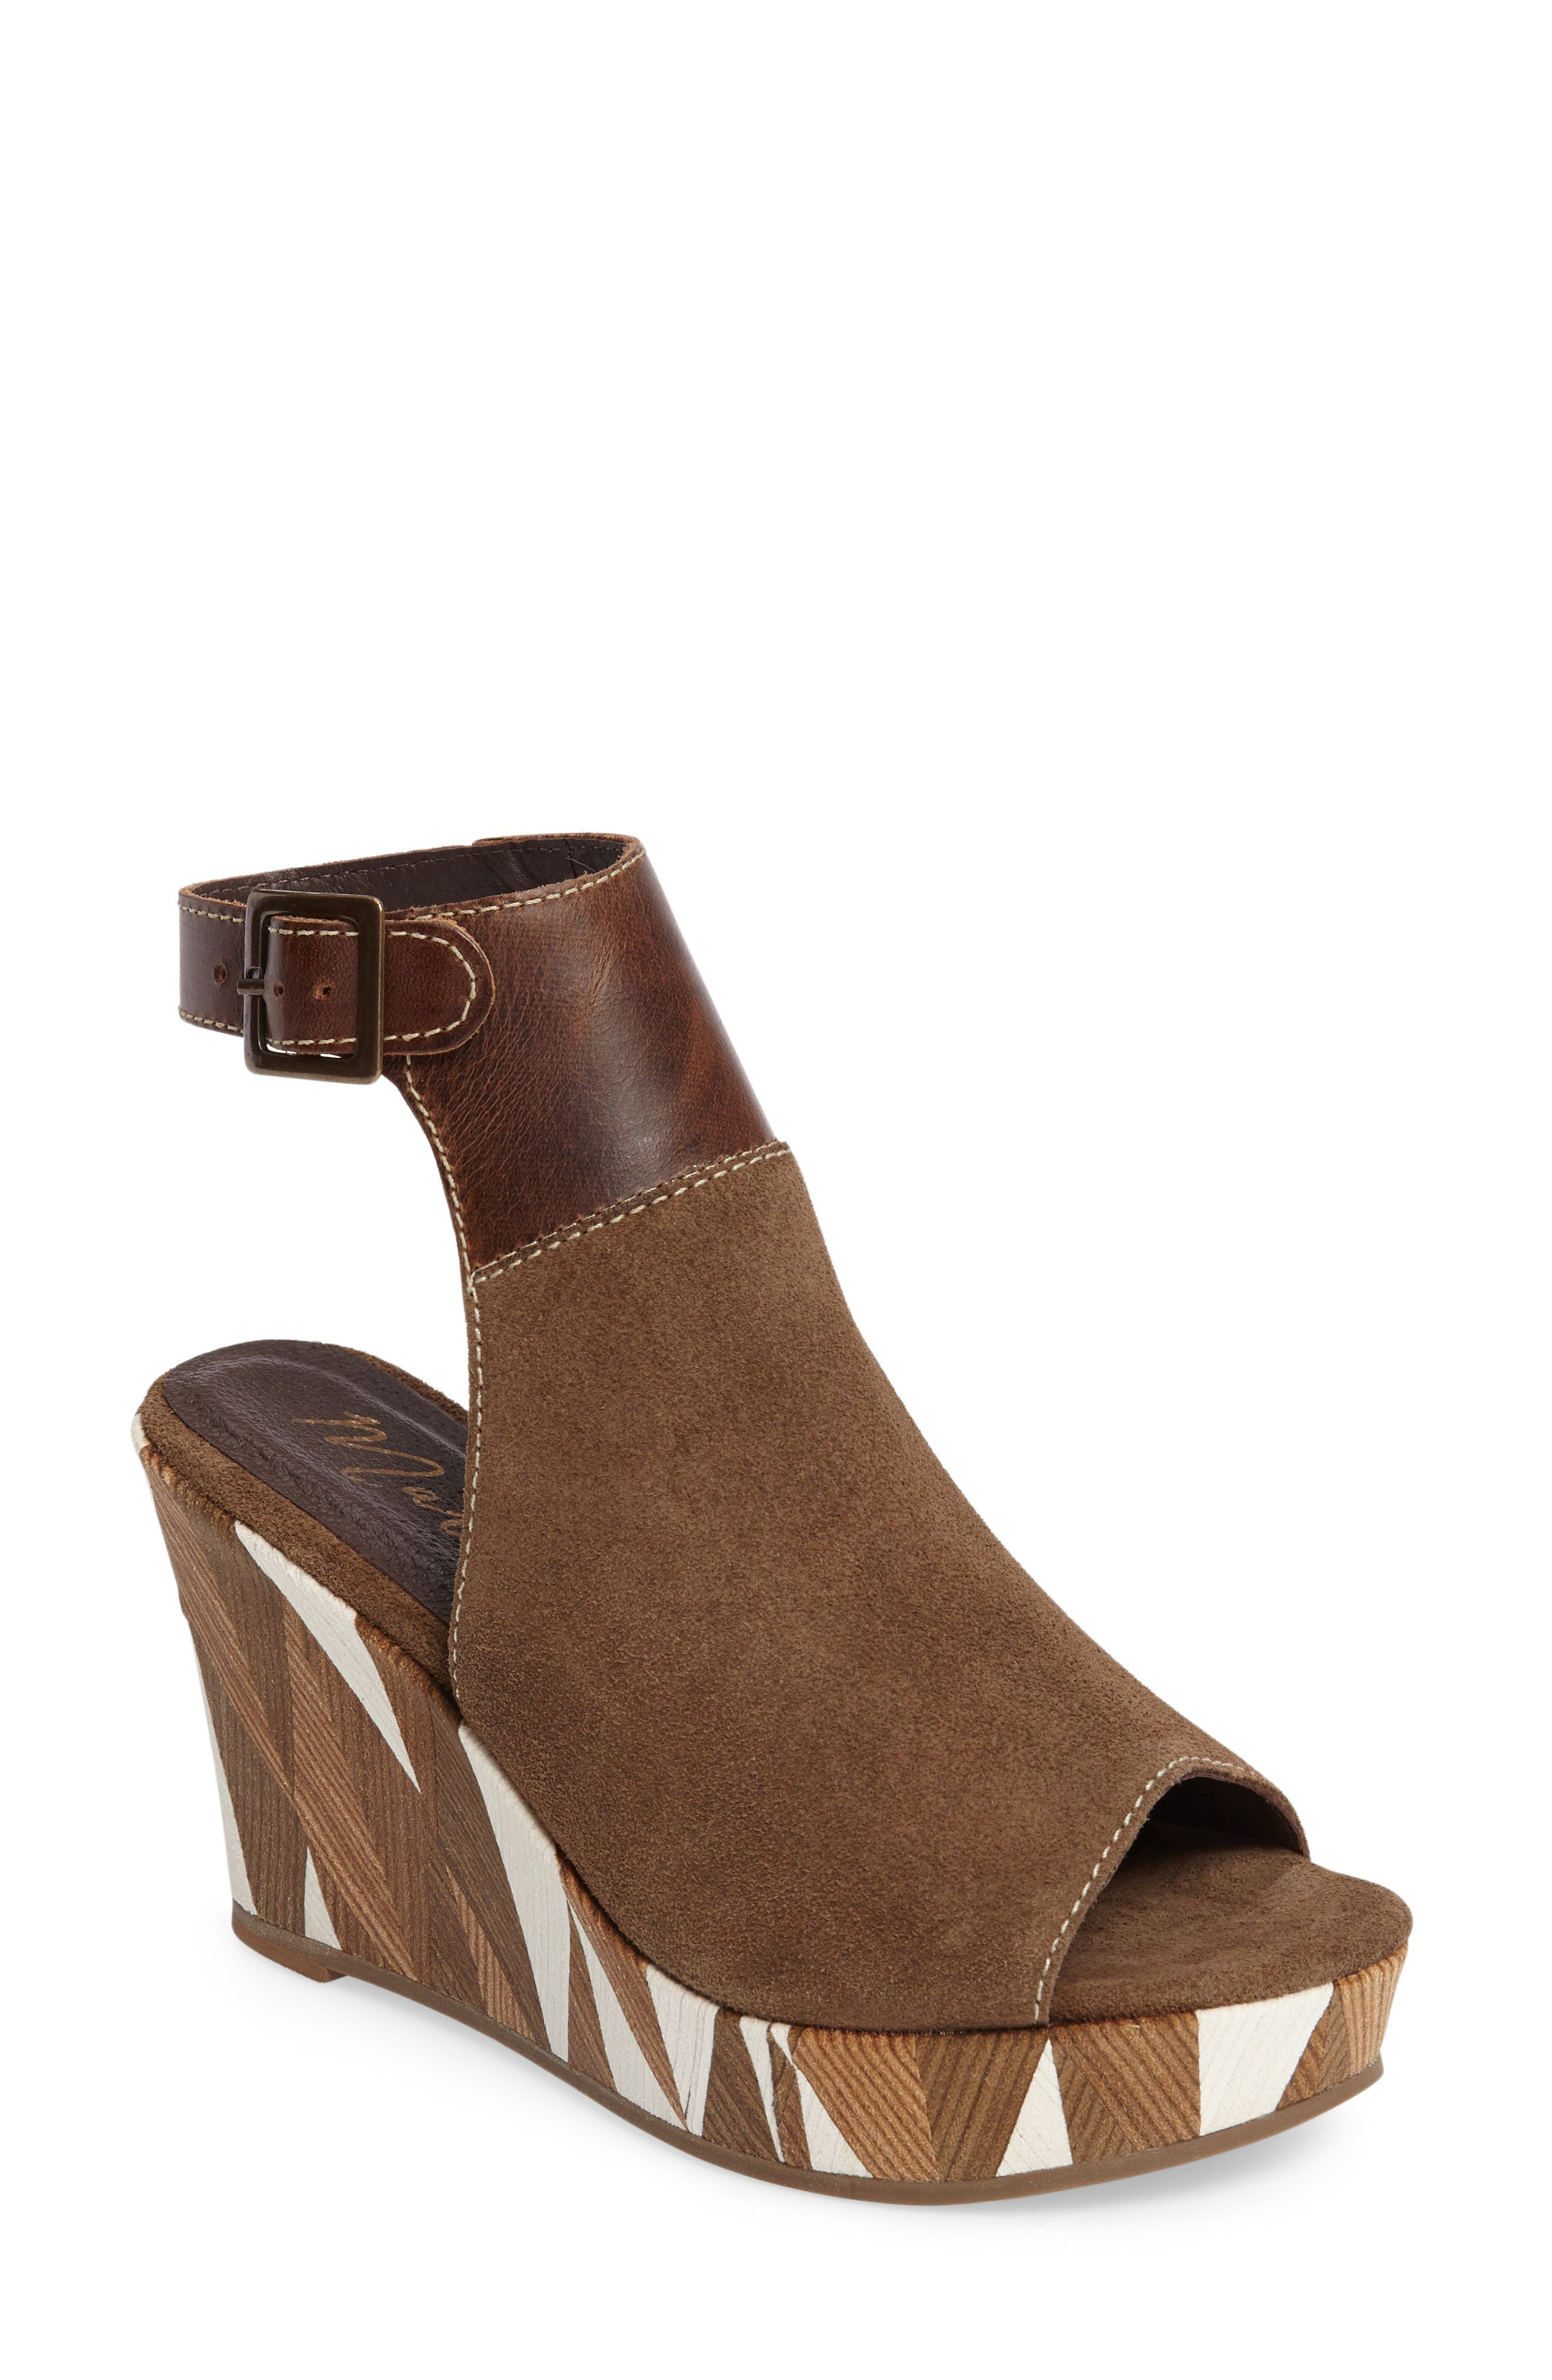 Harlequin Wedge Sandal,                             Main thumbnail 1, color,                             Taupe Leather